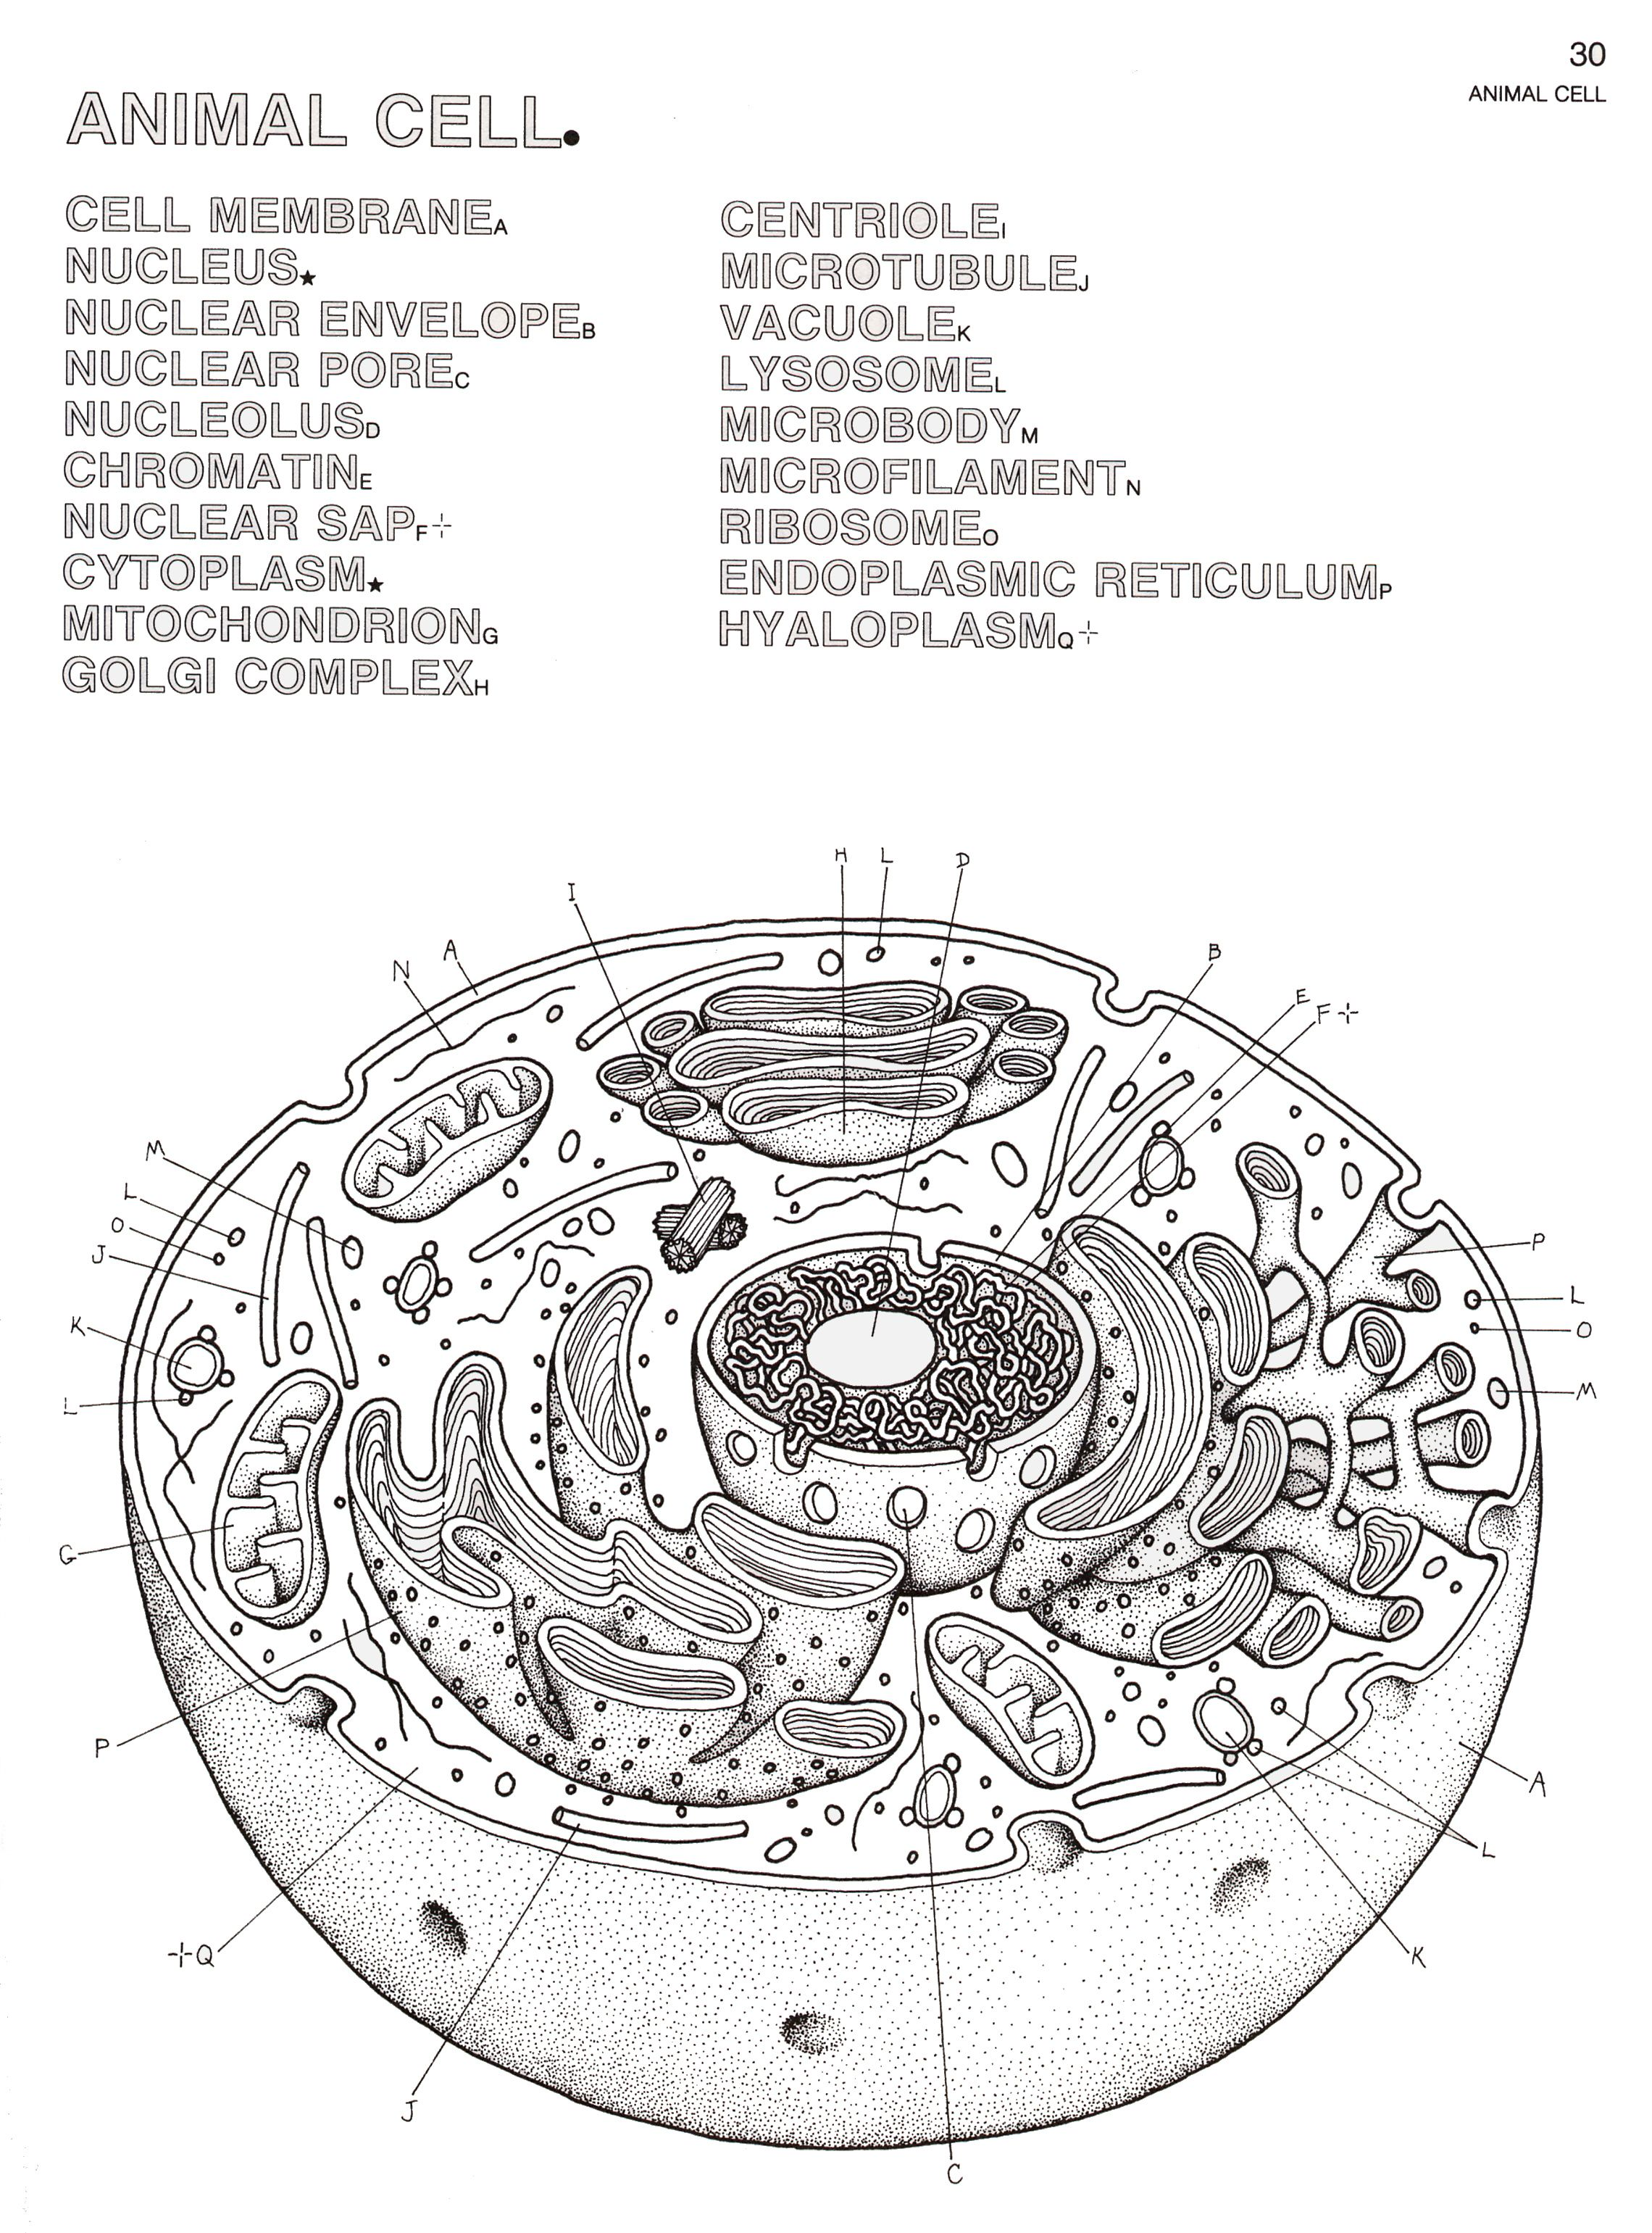 biology coloring pages Pin by Angela Hall on Lab Week Ideas | Biology, Animal cell  biology coloring pages